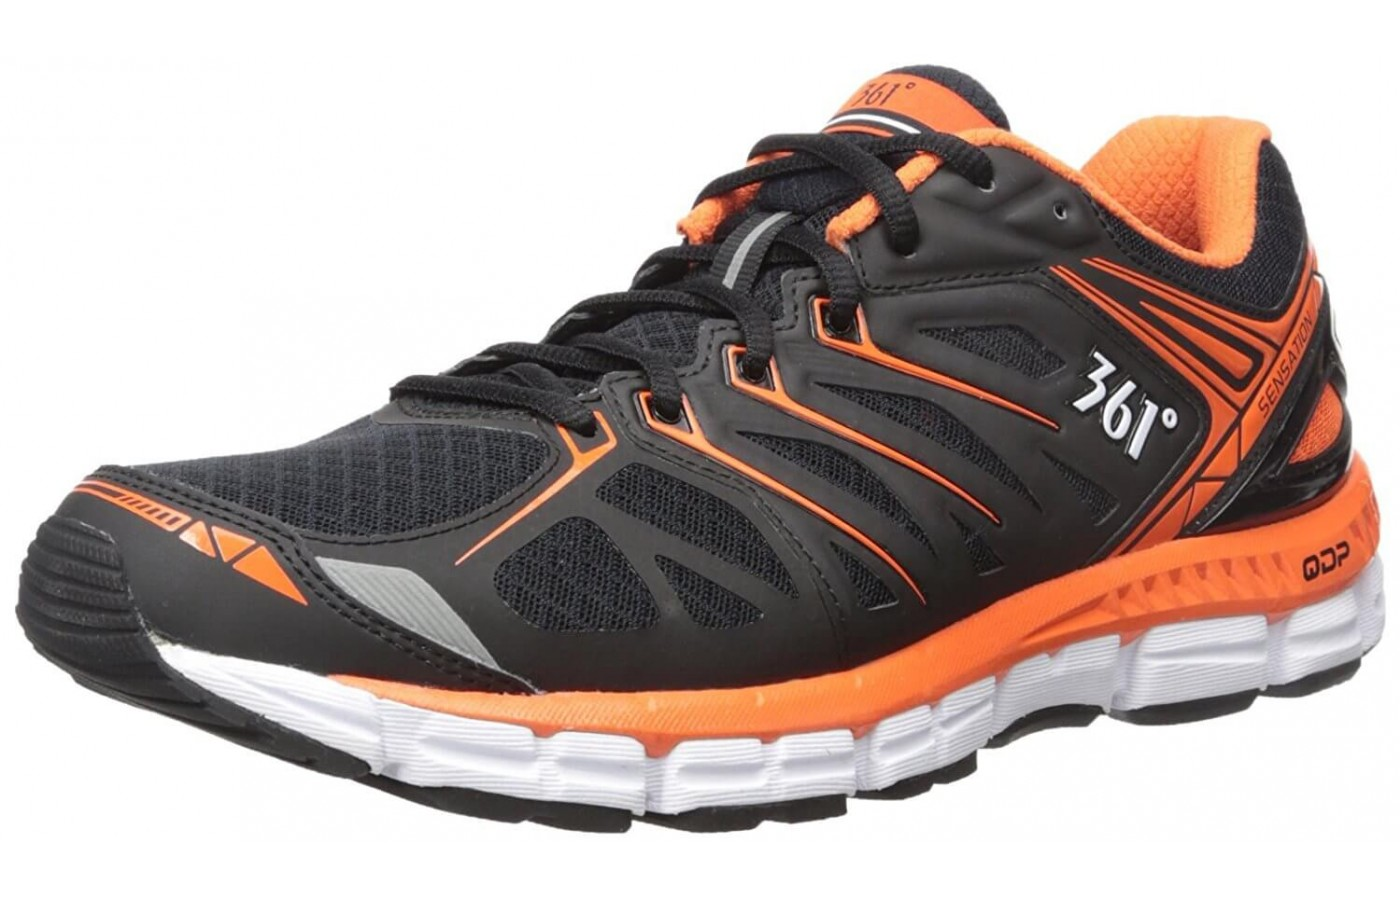 The original 361 Sensation features a sturdy shoe that is great for long miles.